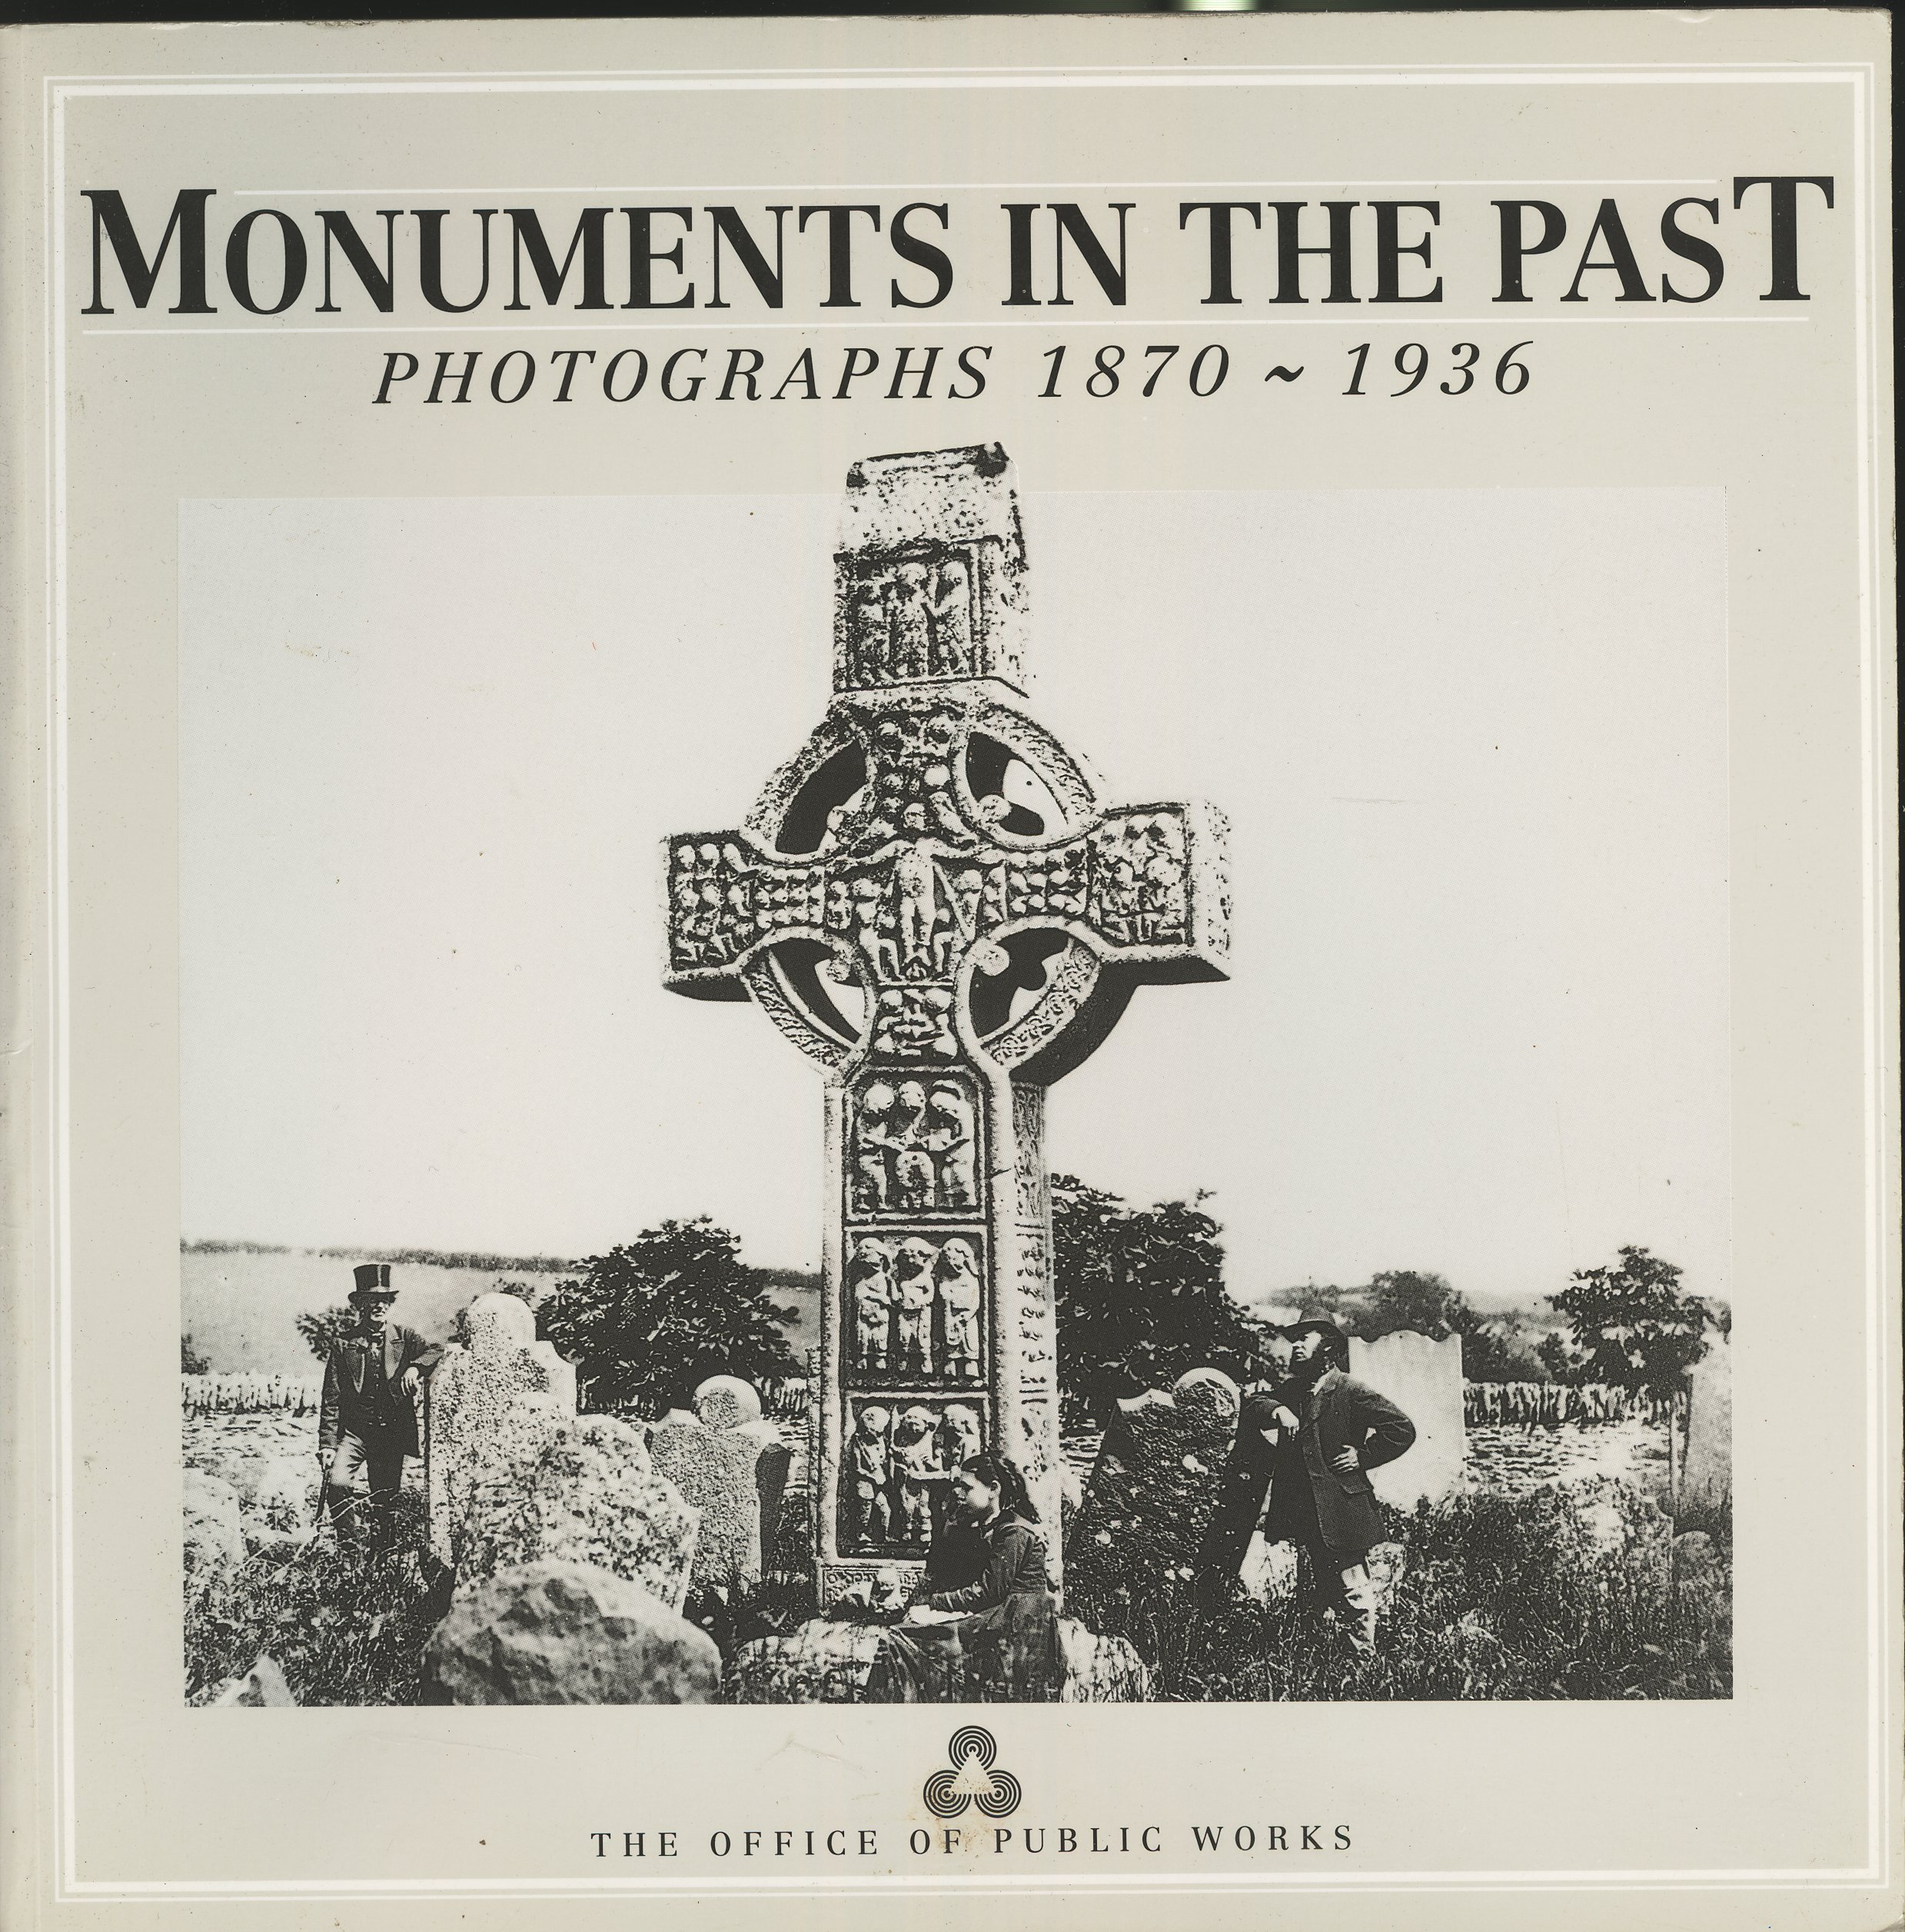 Monuments in the Past: Photographs 1870-1936